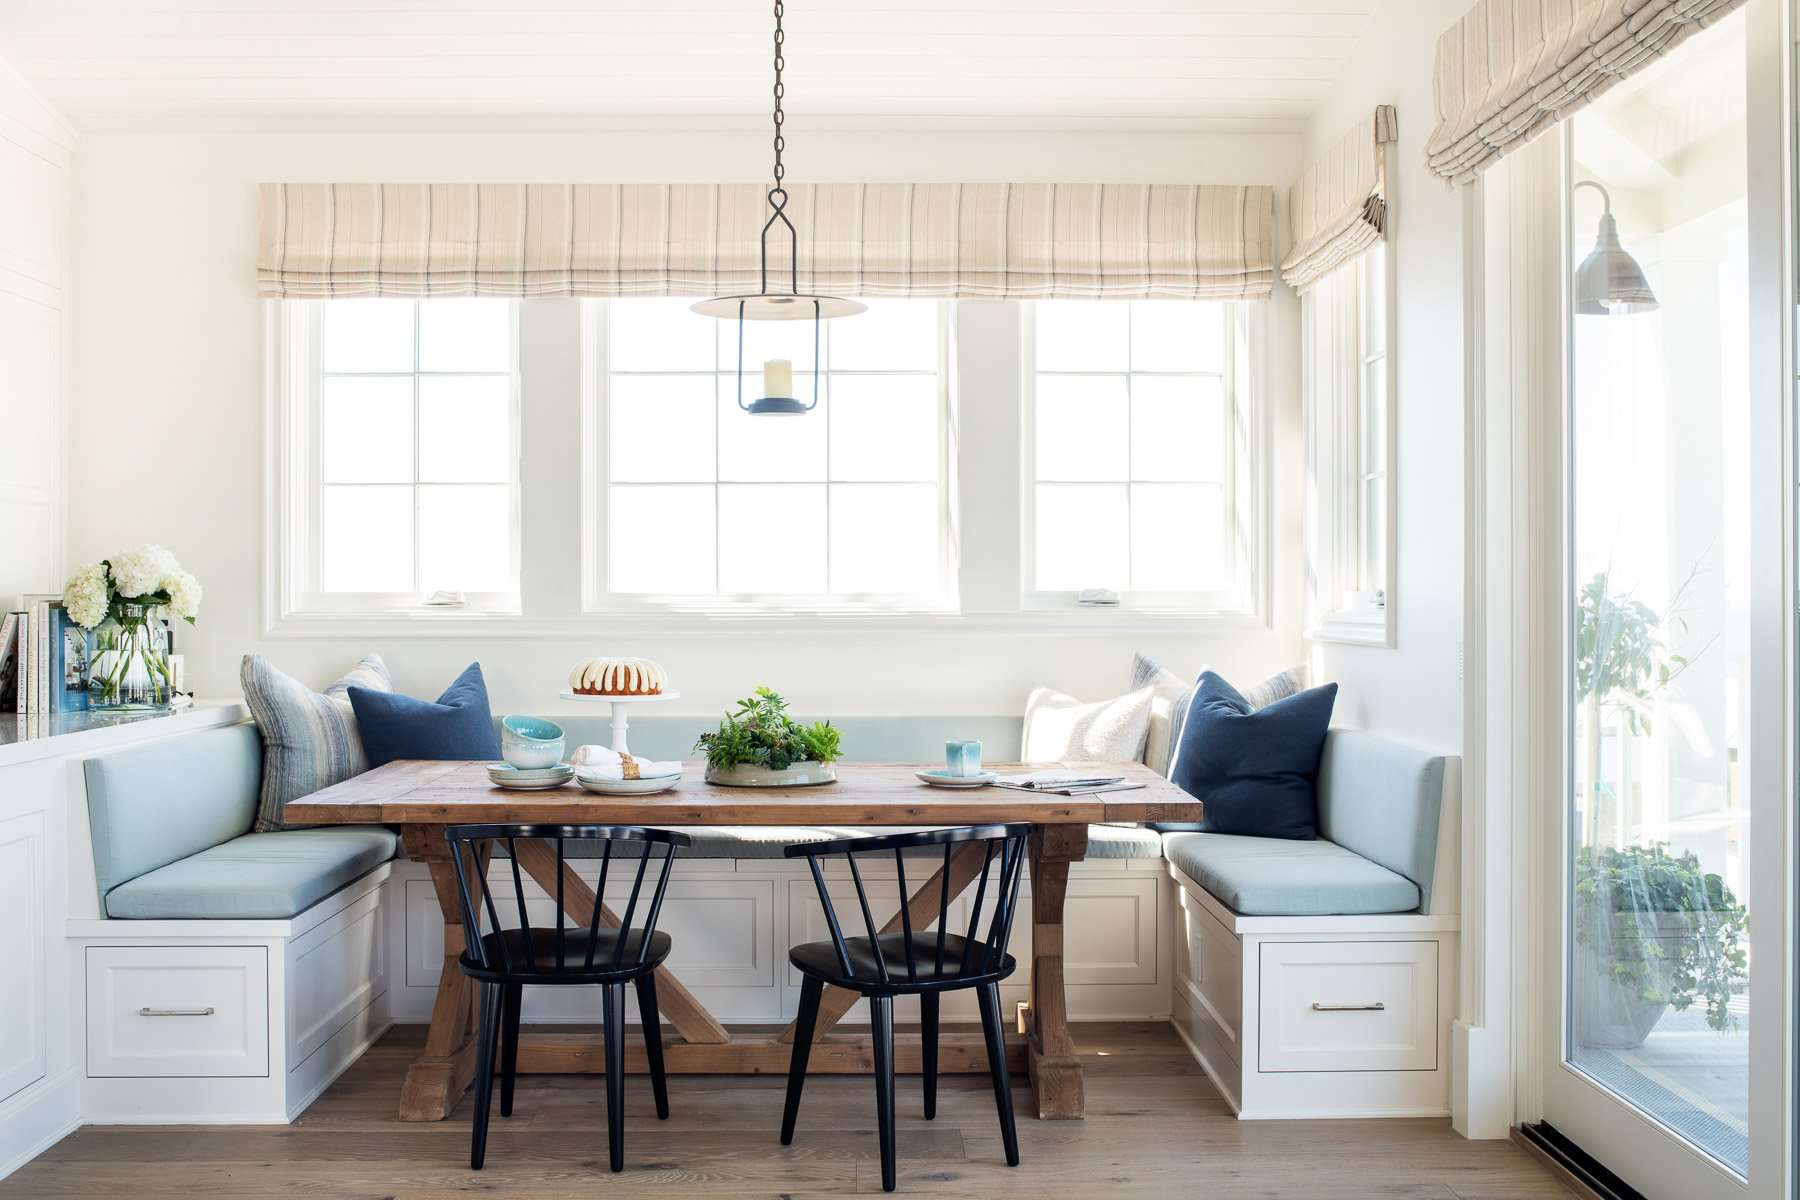 A dining room banquette lined with sky blue cushions and navy throw pillows